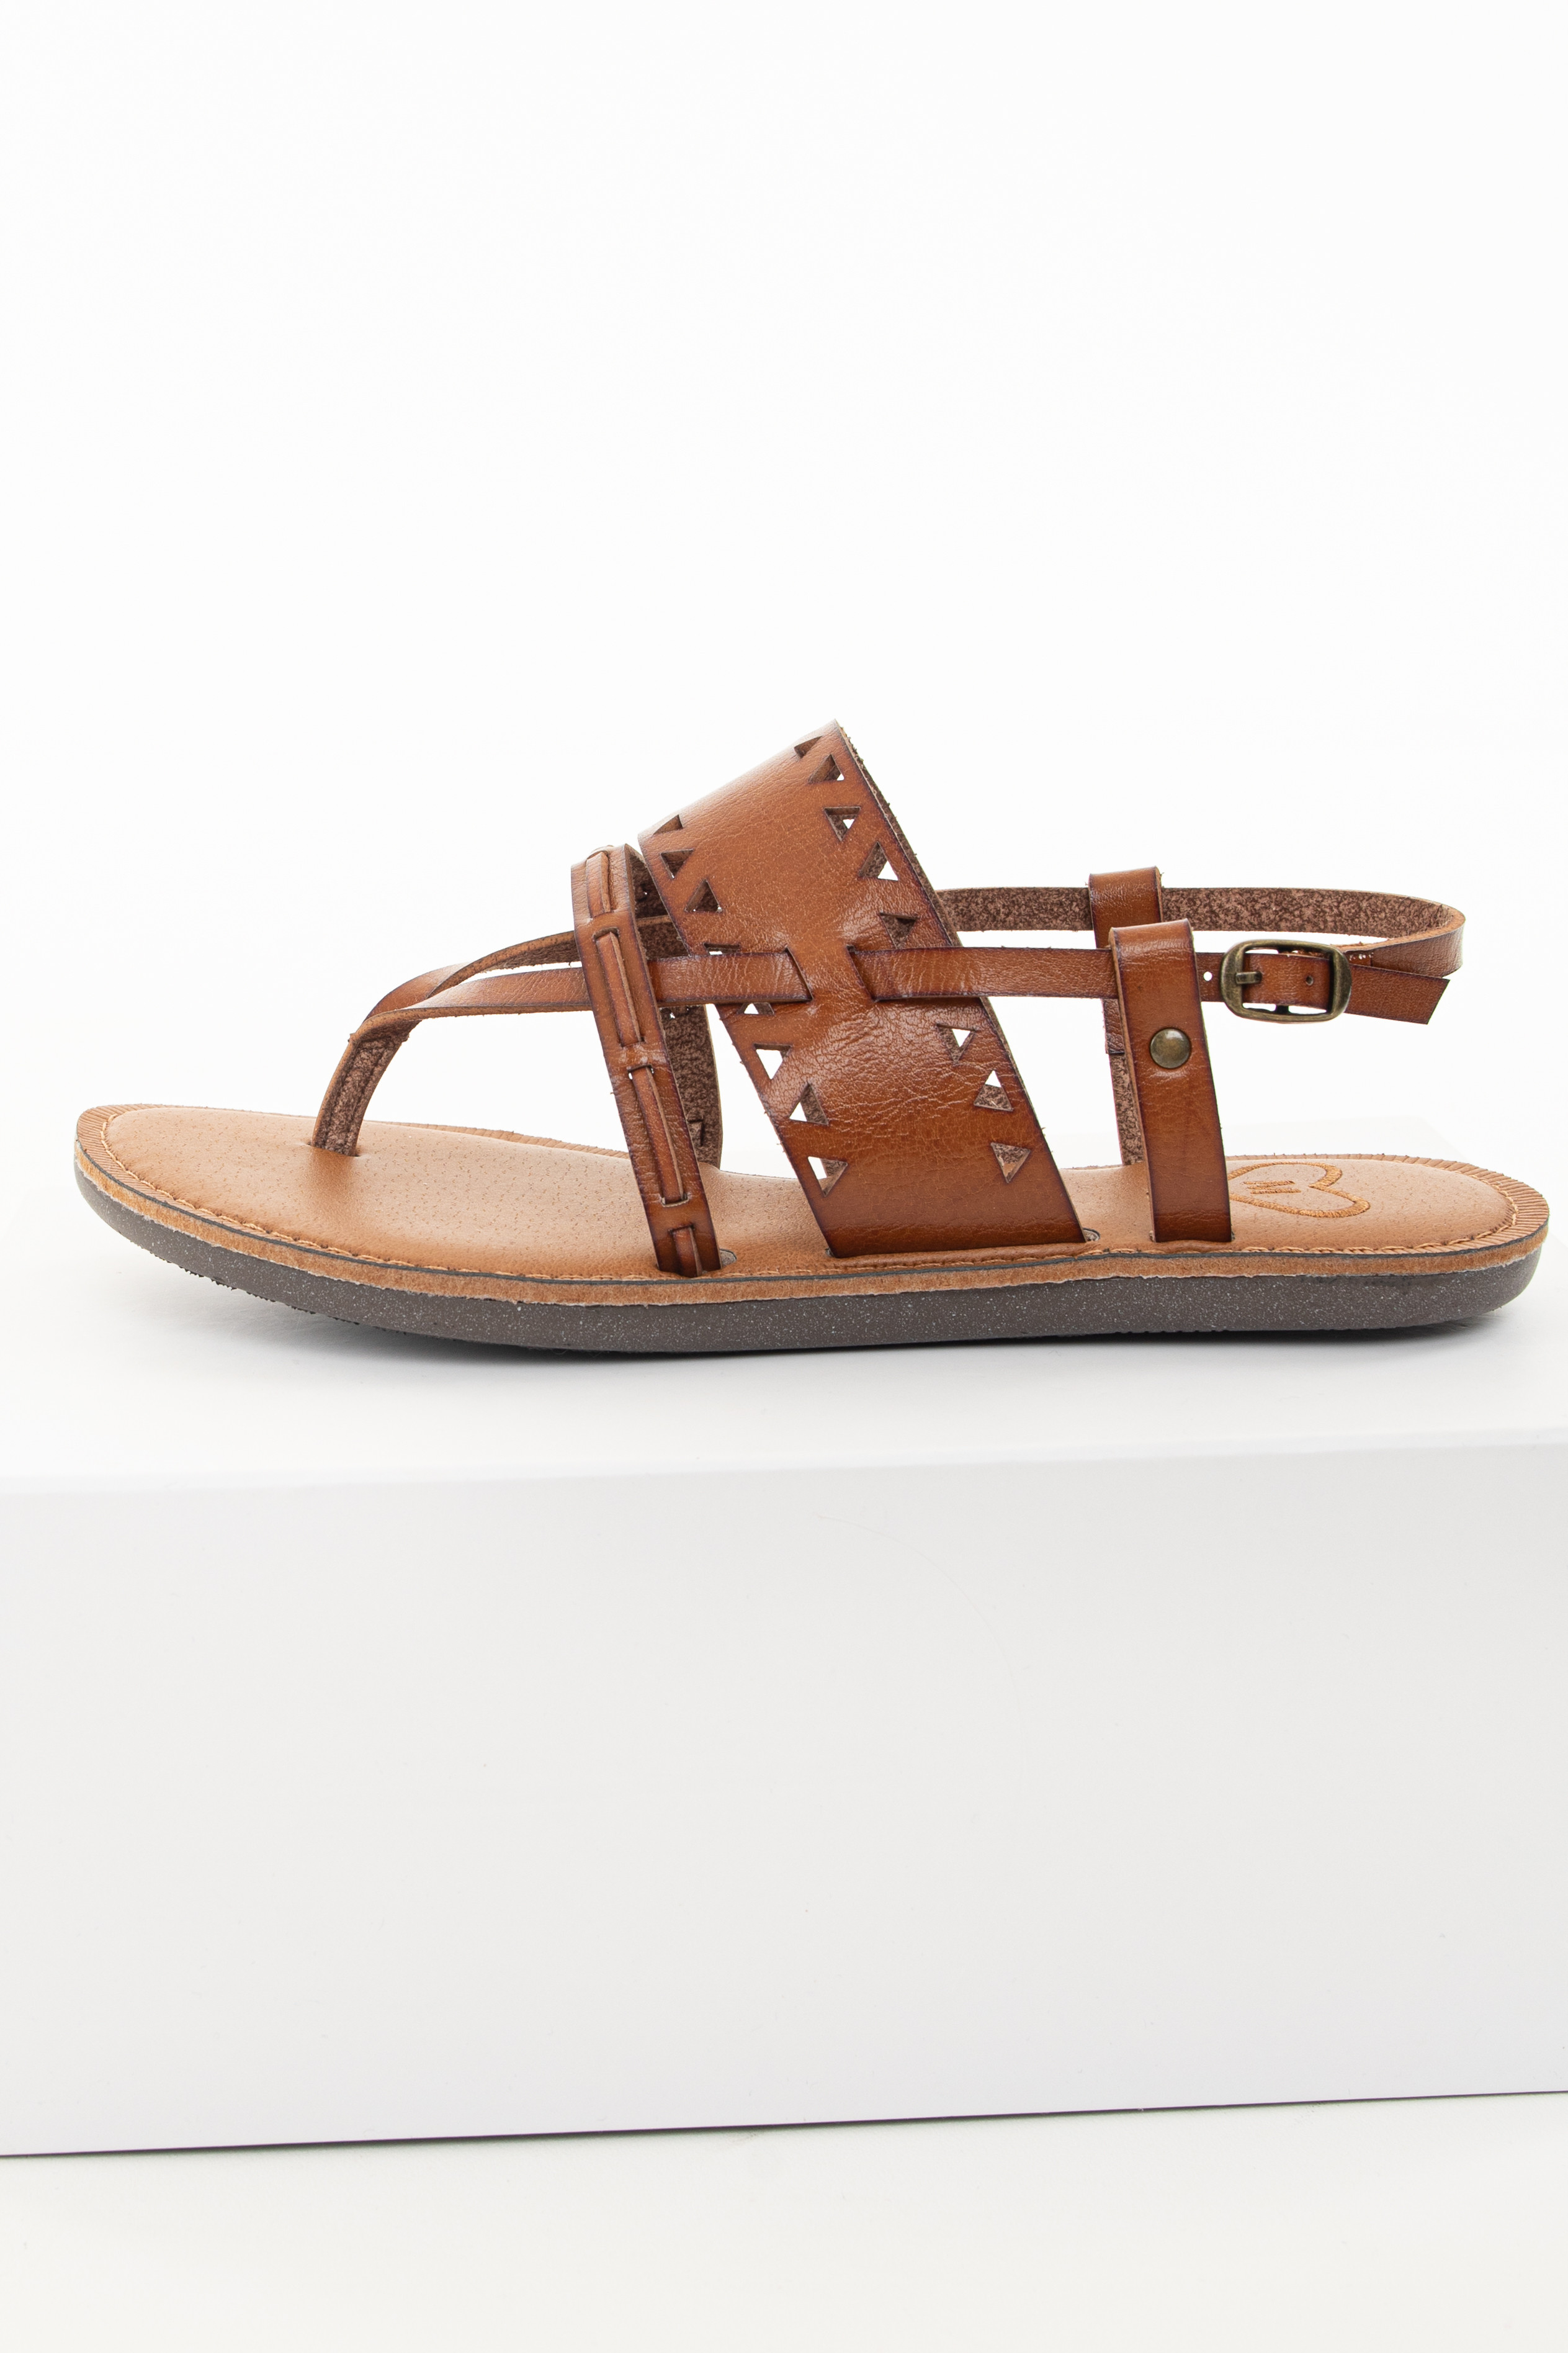 Brown Sugar Strappy Sandal with Triangle Cutouts